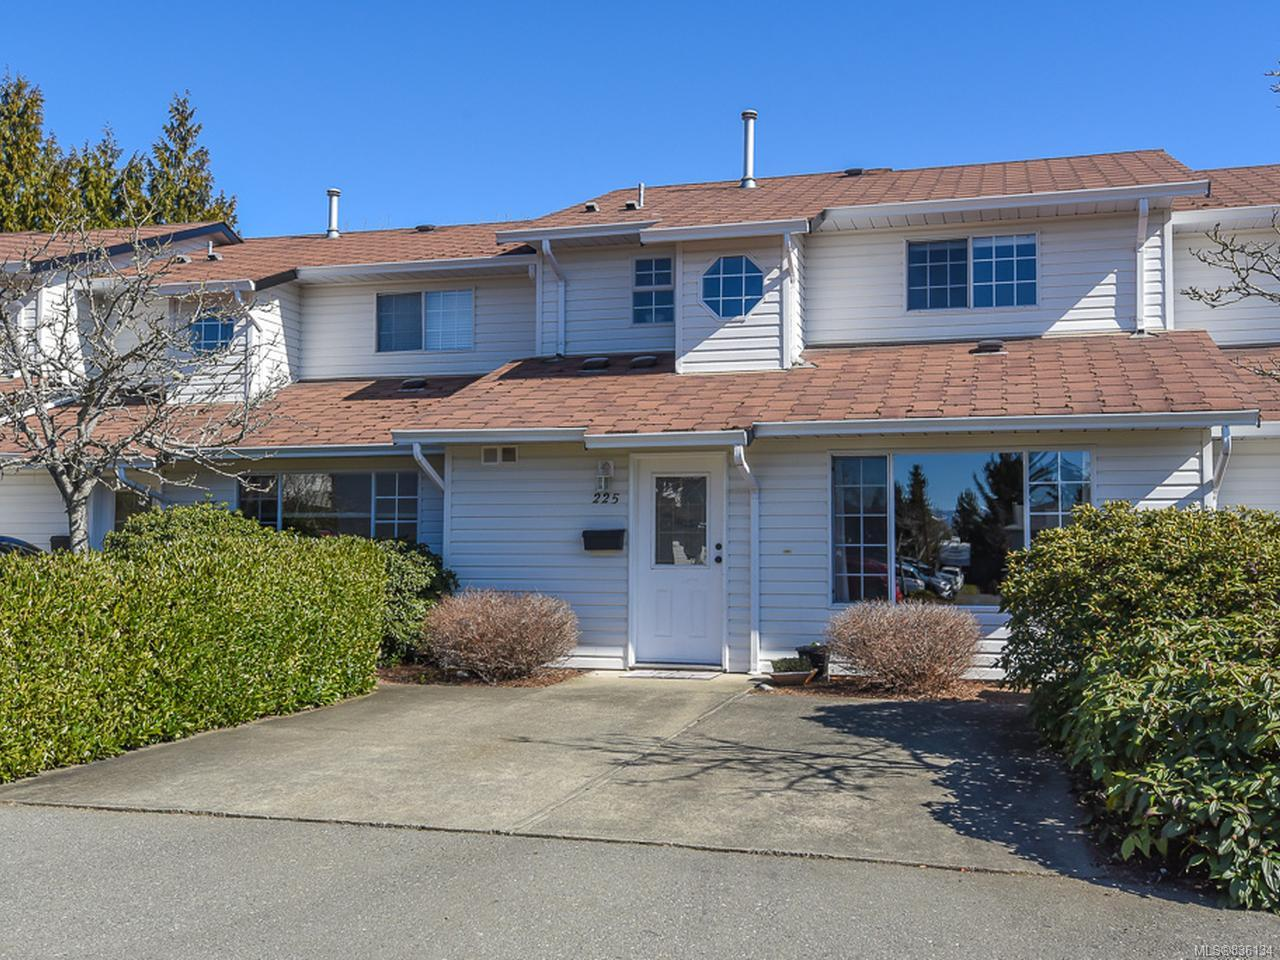 FEATURED LISTING: 225 - 680 Murrelet Dr COMOX